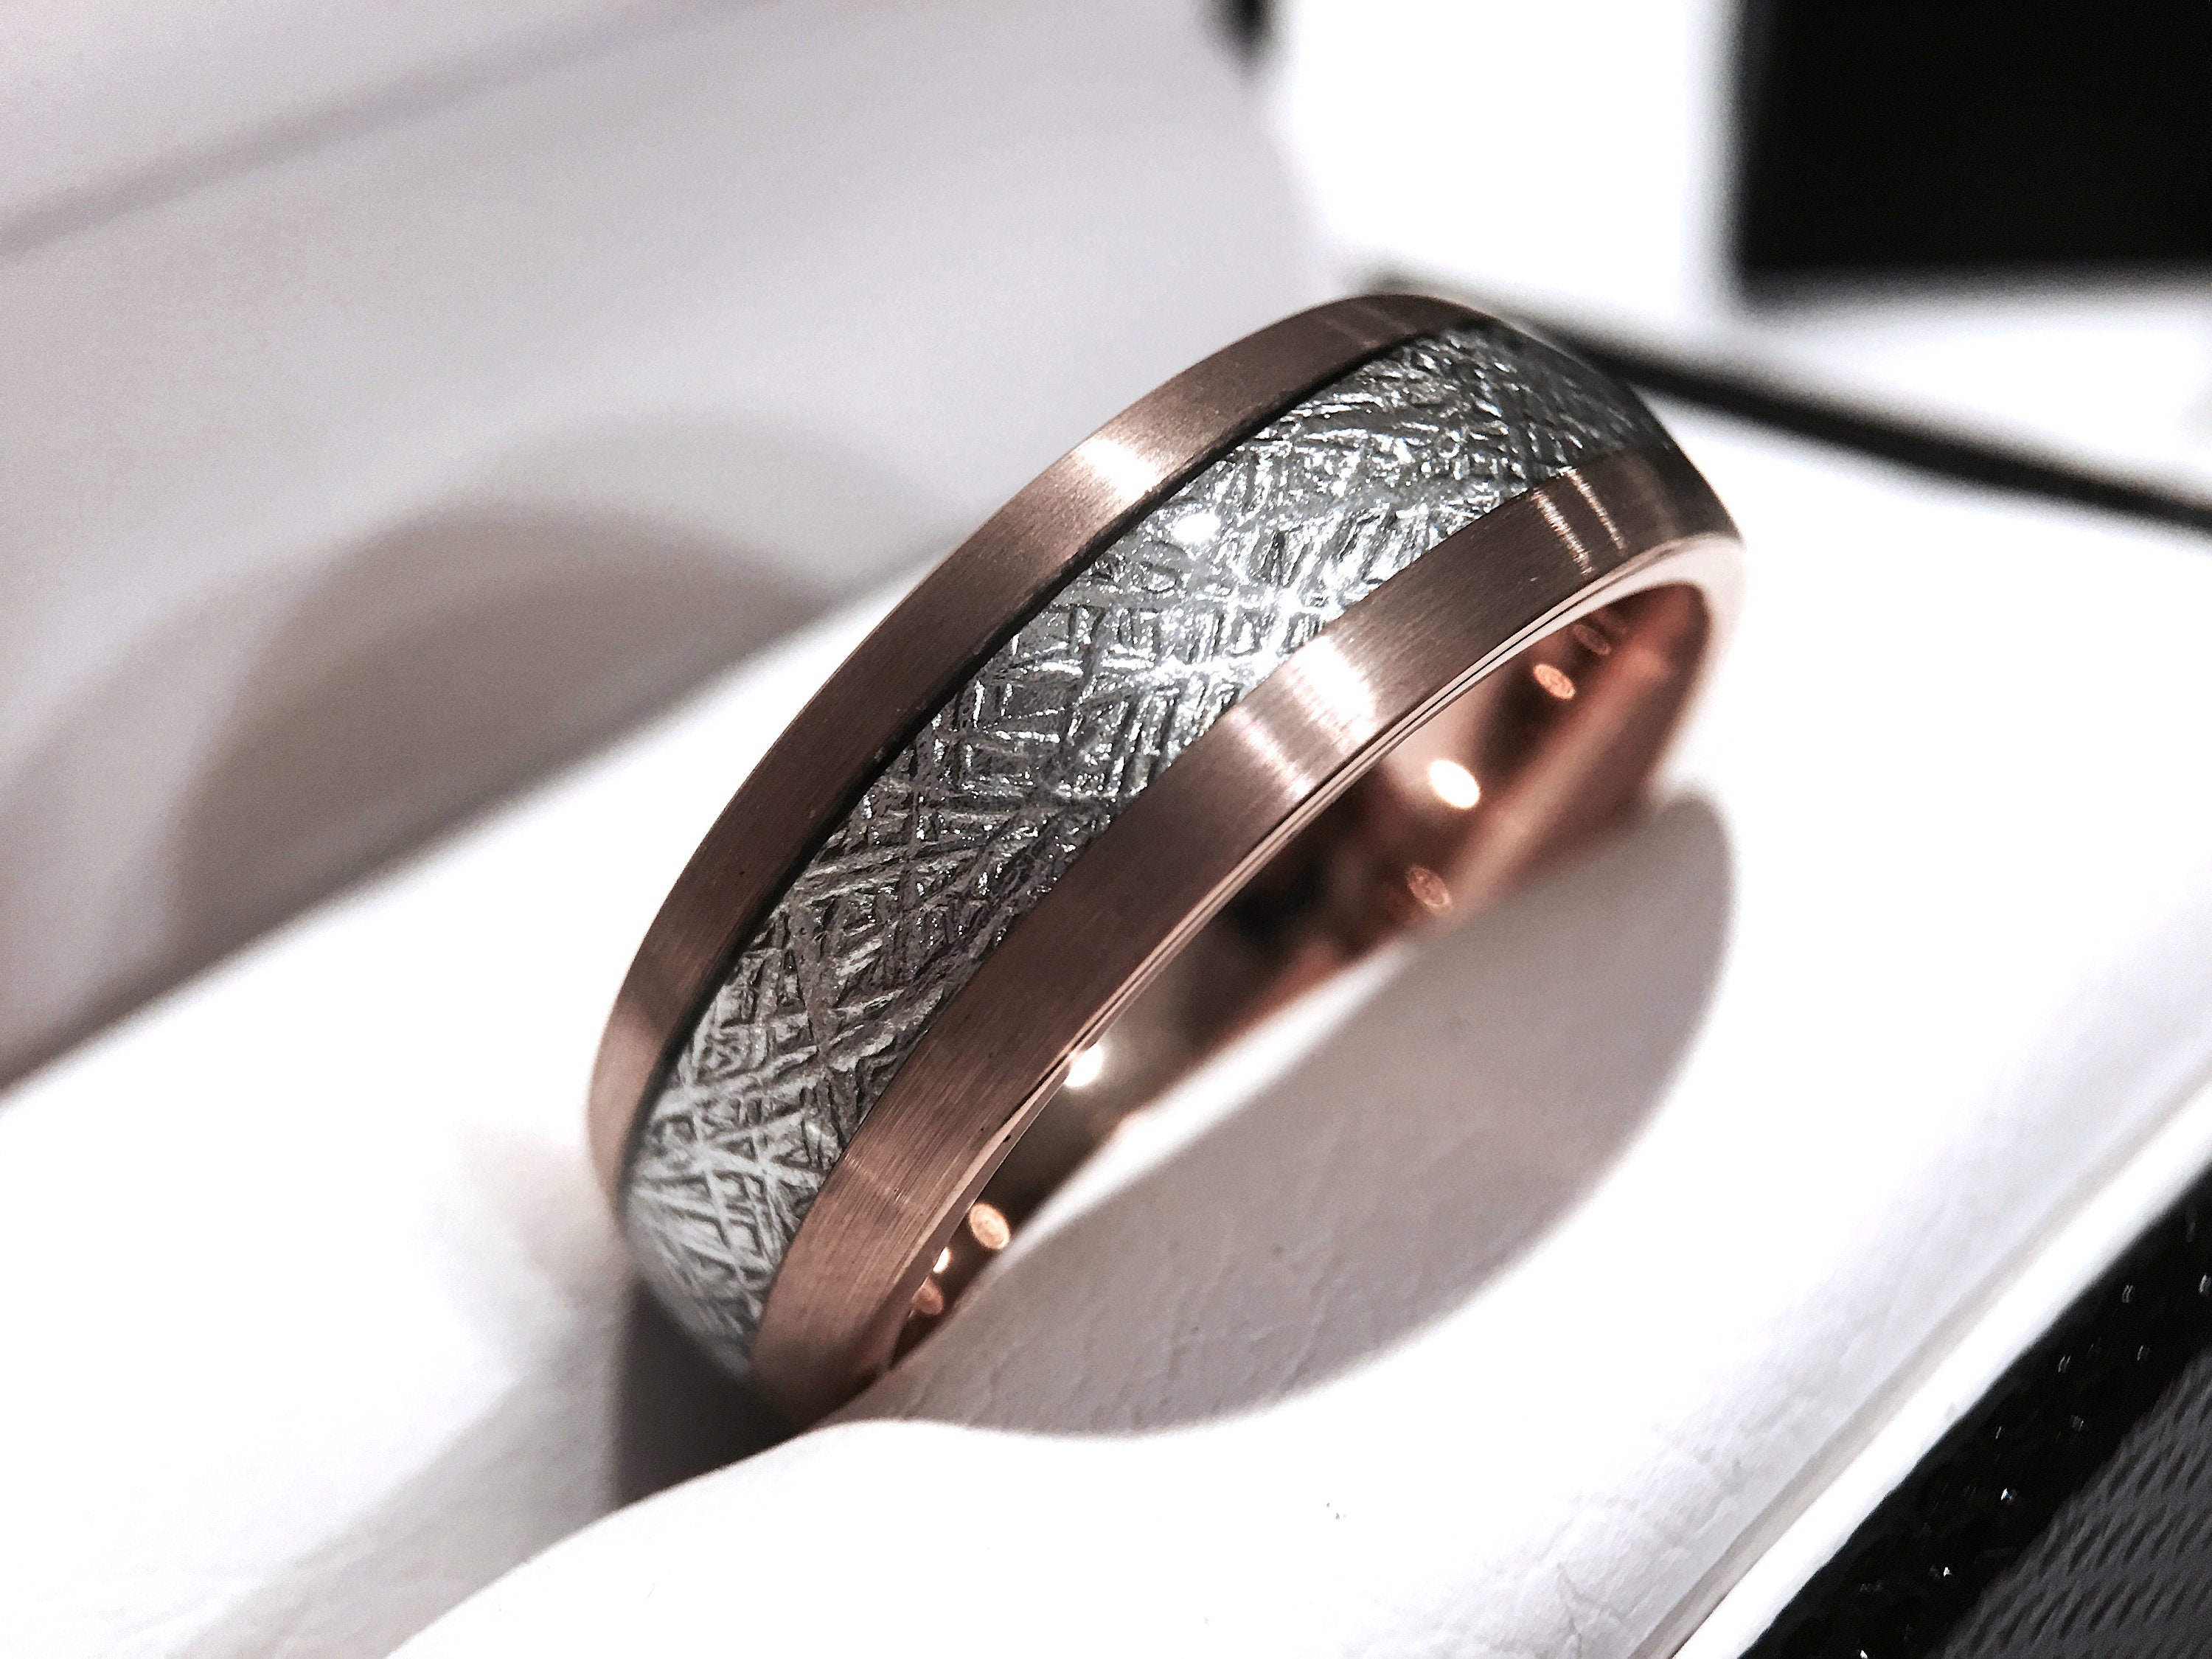 50: Tungsten Wedding Band Sets For Women At Websimilar.org